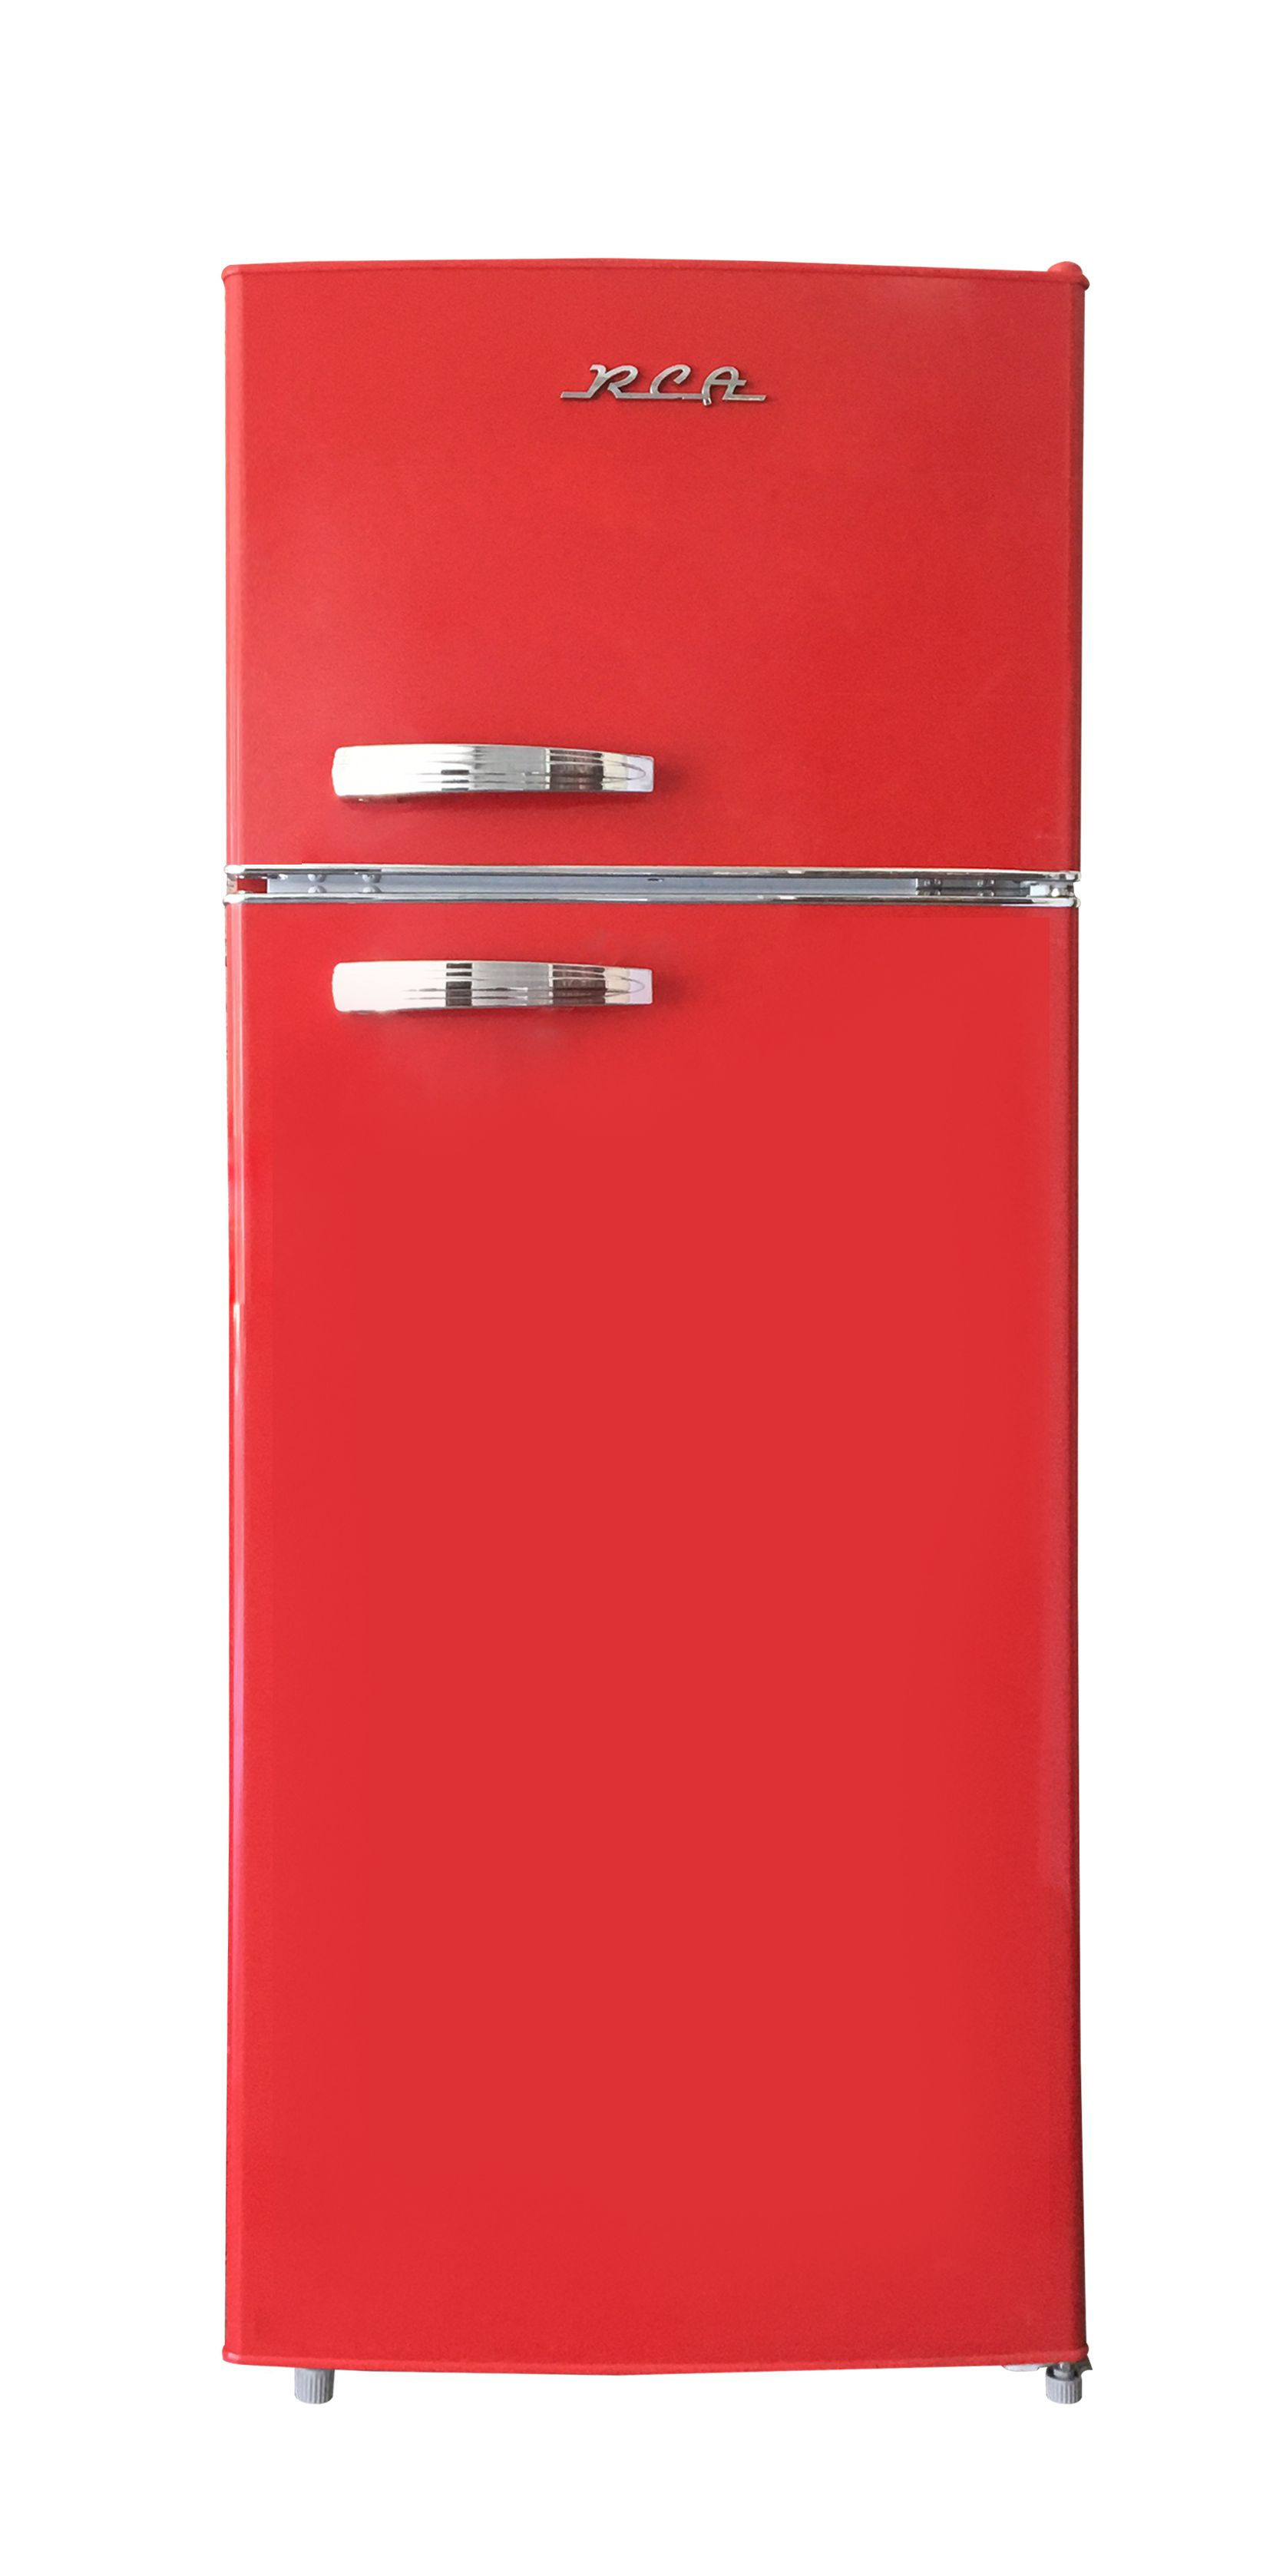 Rca 10 Cu Ft Top Freezer Apartment Size Retro Refrigerator Red Rfr1055 Walmart Com In 2020 Retro Refrigerator Refrigerator Bottle Store